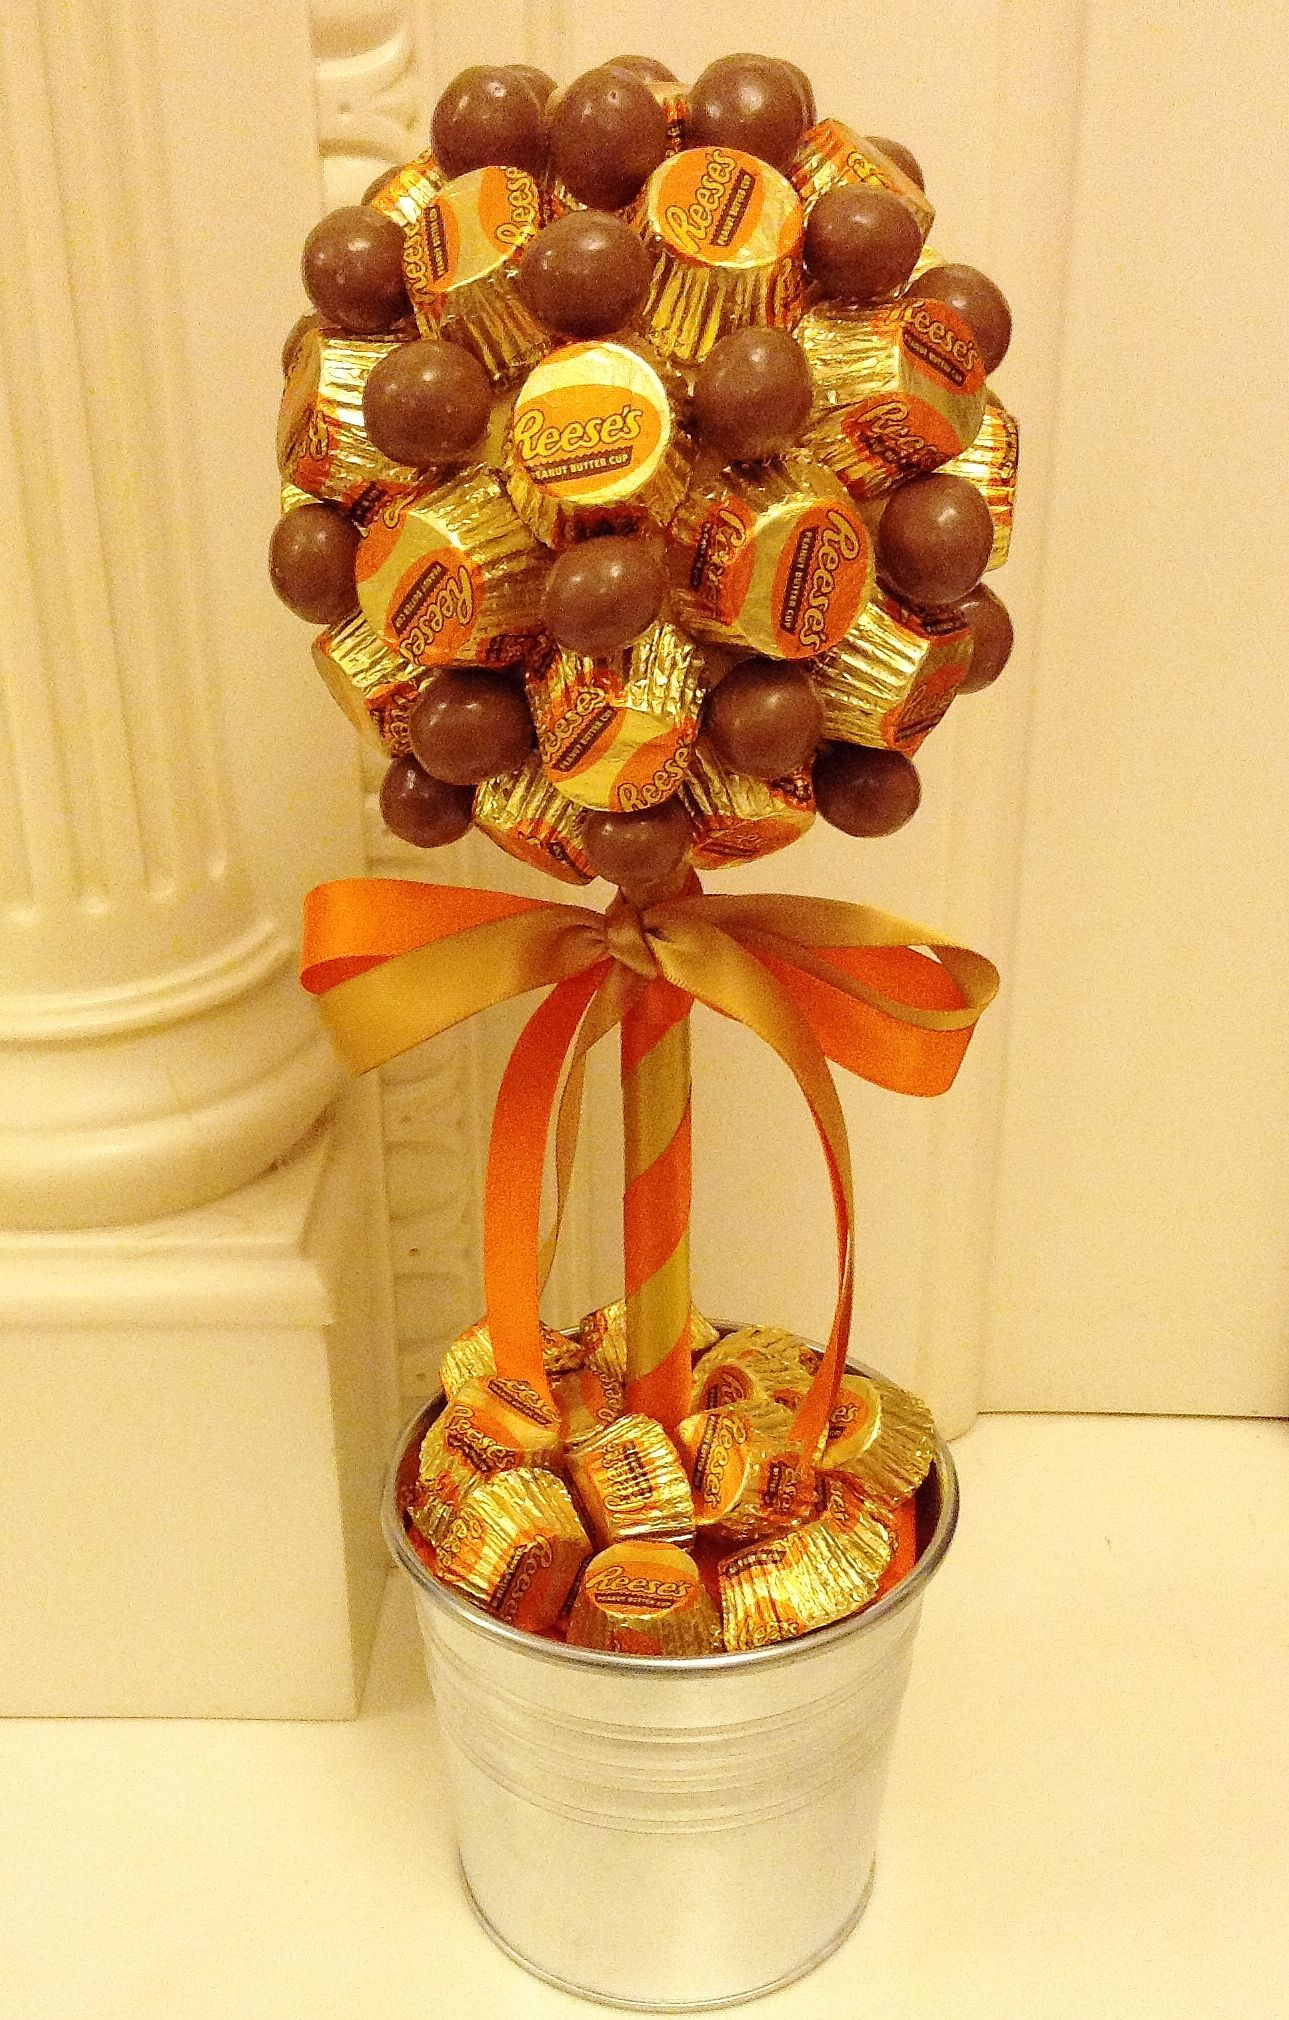 Peanut butter cups and malteser Candy Tree www